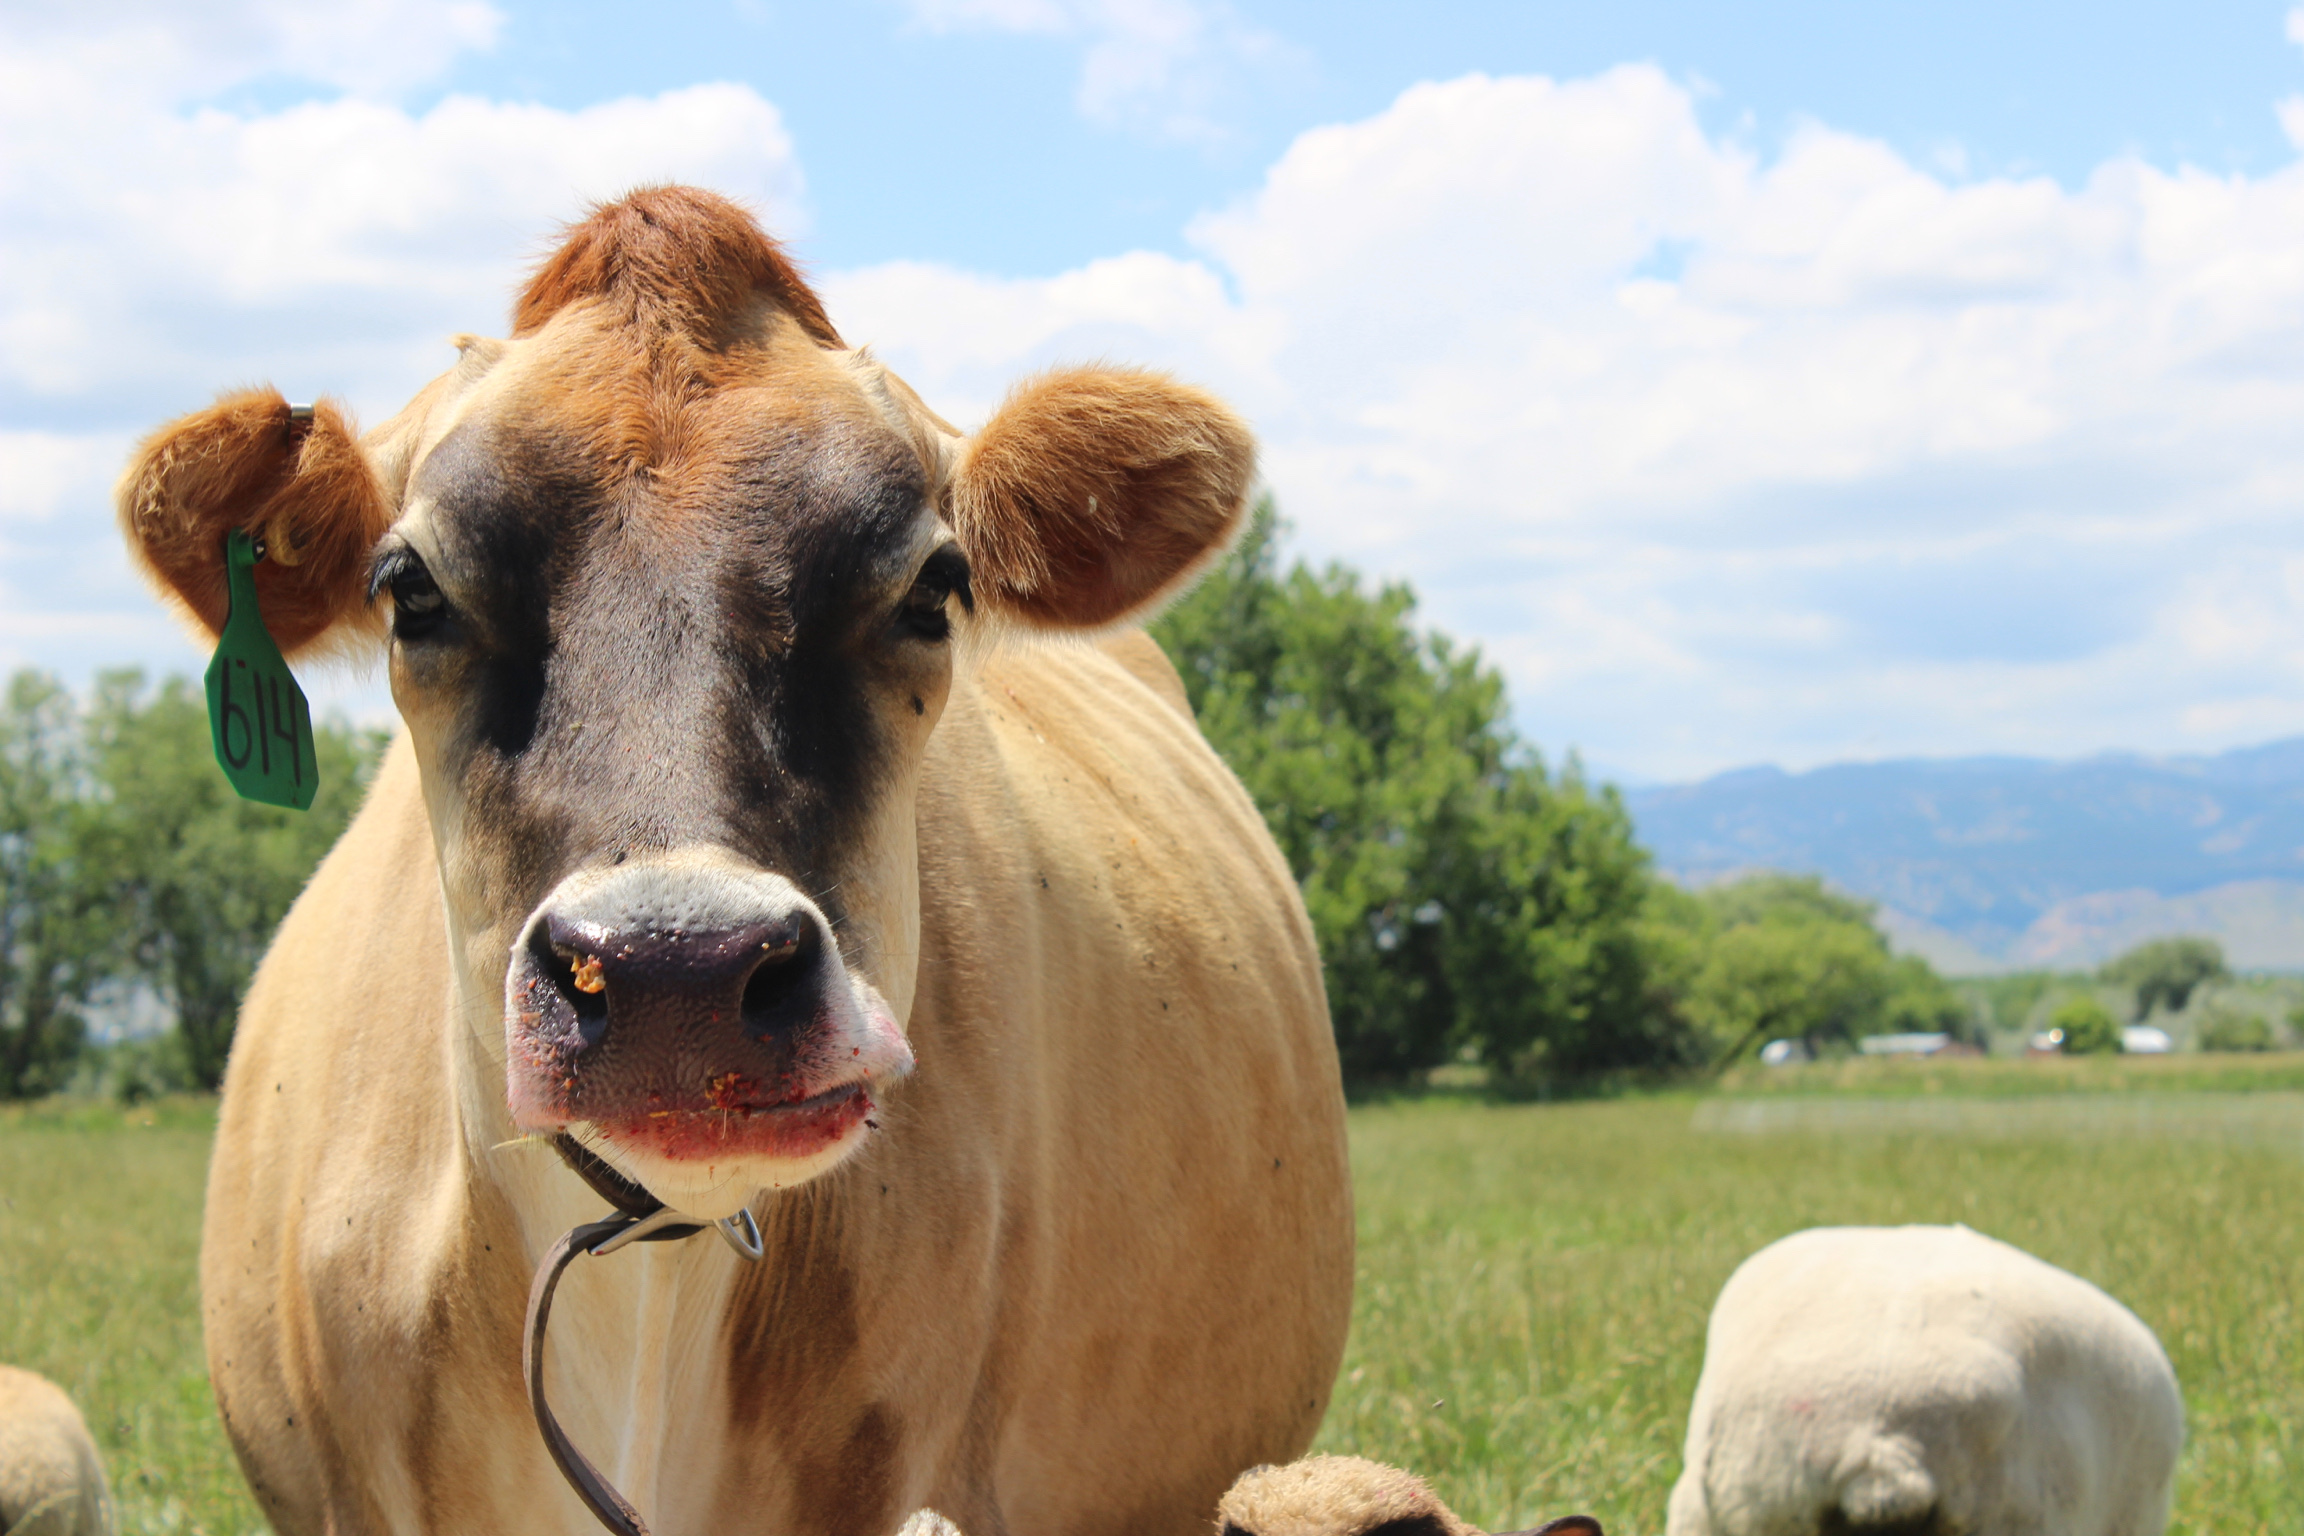 GETTING RID OF GAS - A healthy cow is a happy cow. Studies show that supplementing the diets of four-stomached animals with fermented feed (silage) reduces their greenhouse gas emissions.